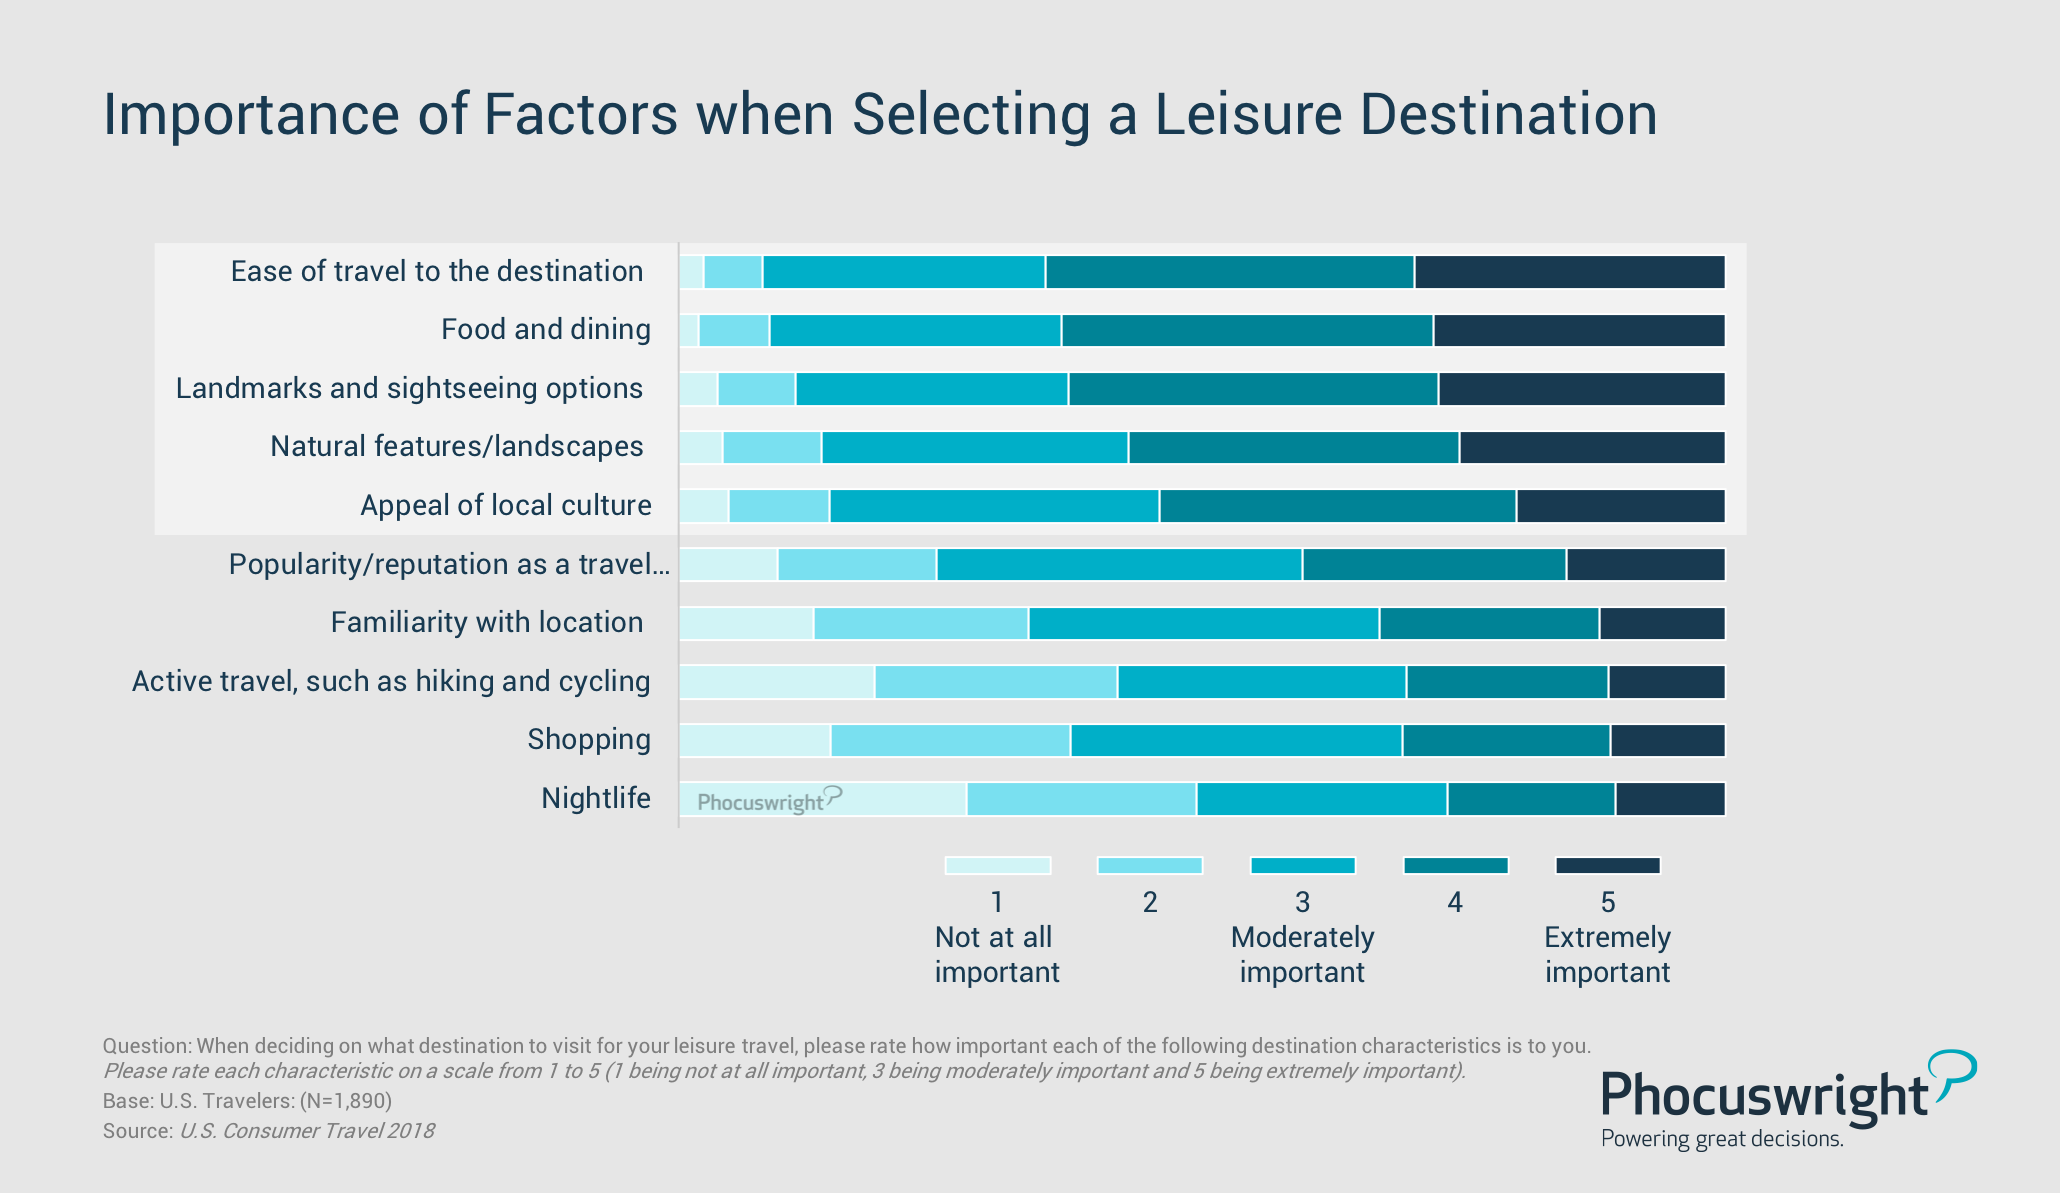 Importance of Factors when Selecting a Leisure Destination